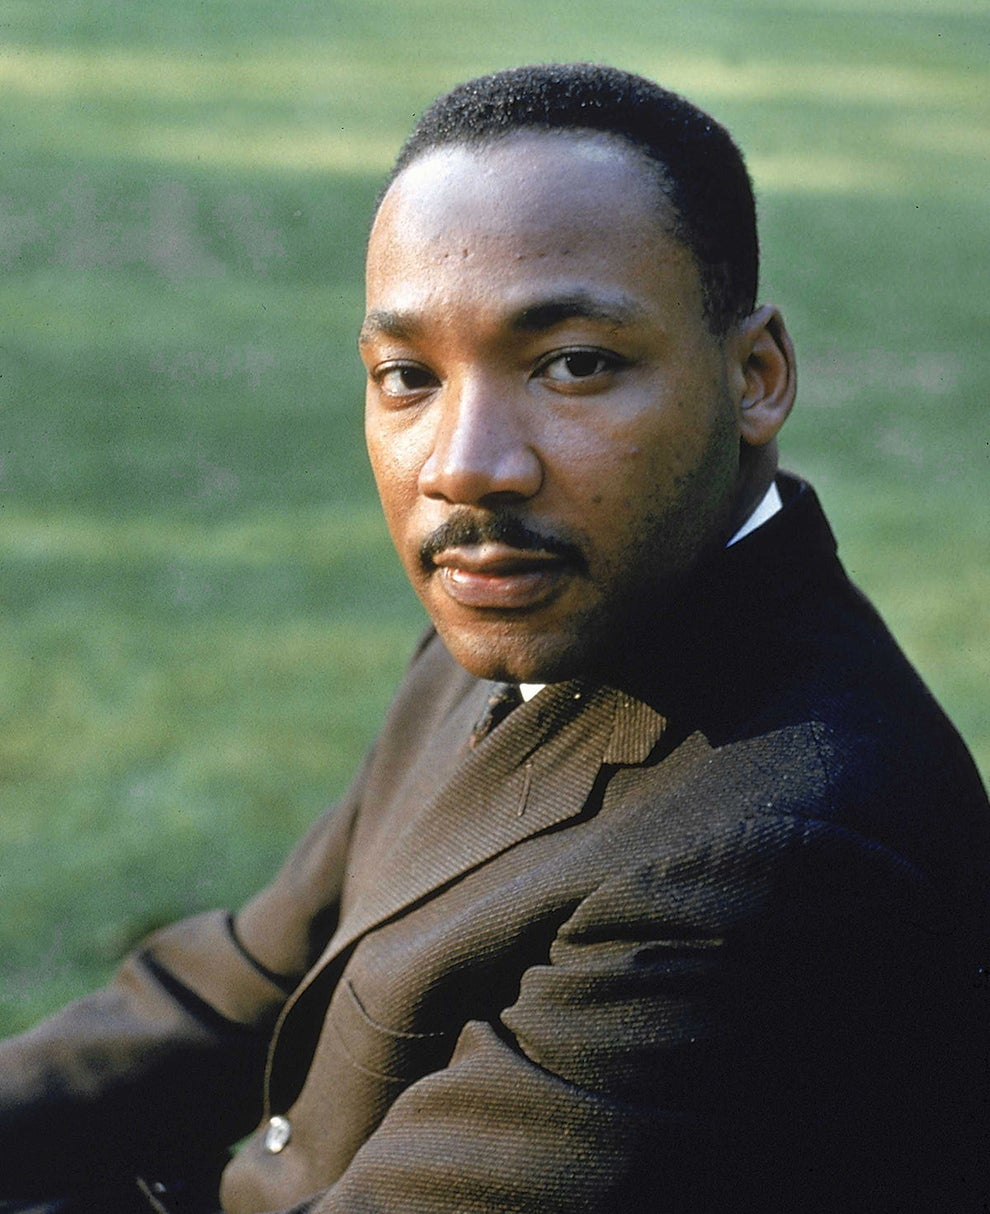 23 Incredible Full-Color Pictures Of Martin Luther King Jr